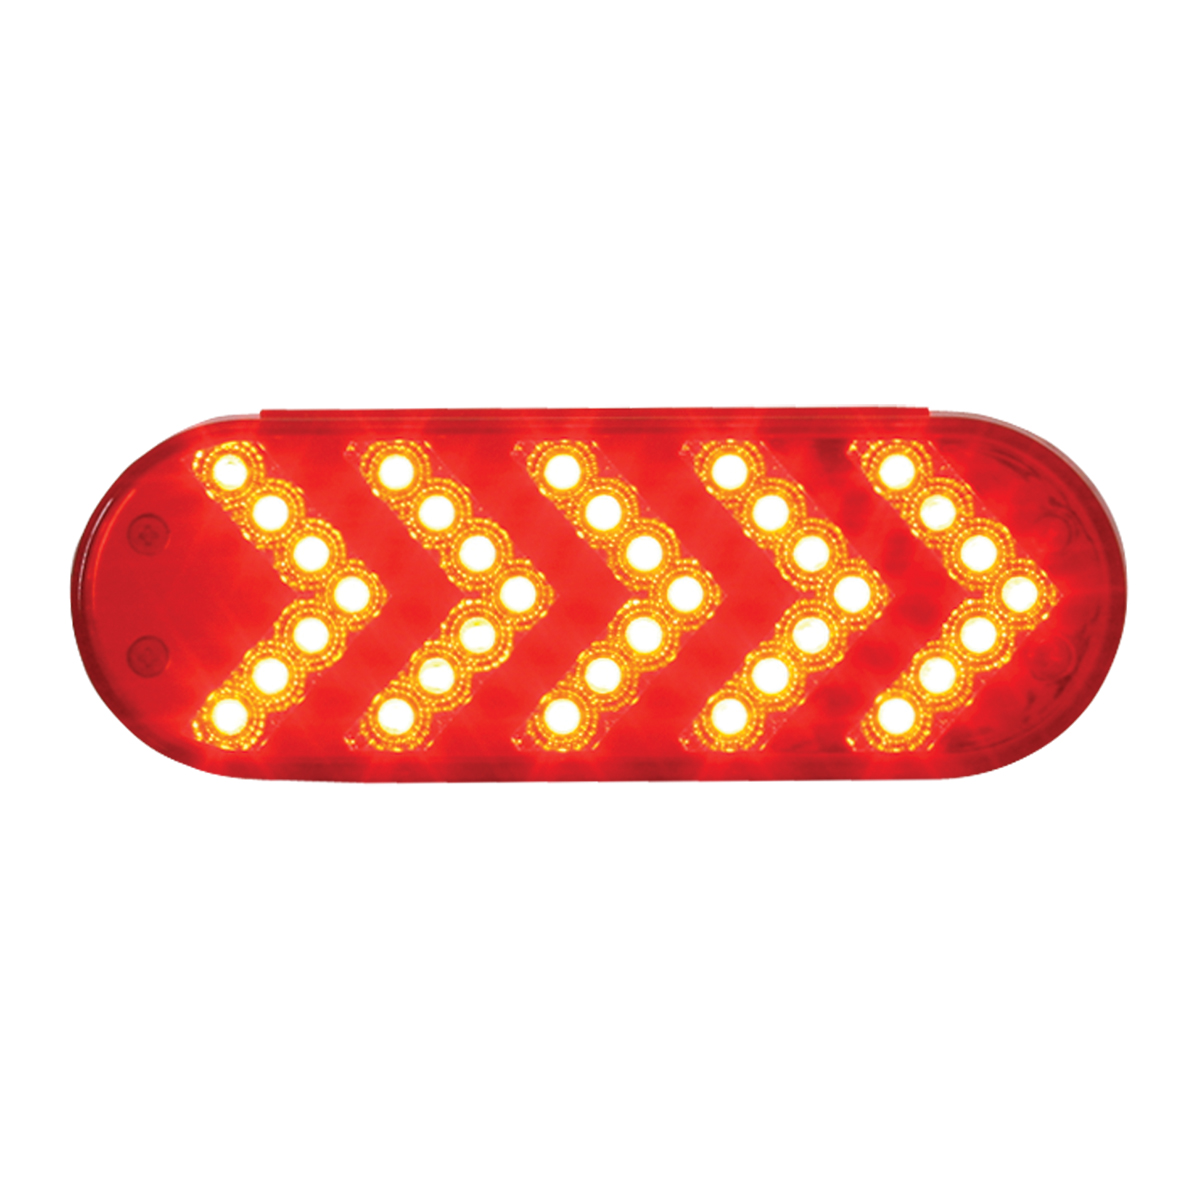 77126 Oval Sequential Arrow Spyder LED Light in Red/Red